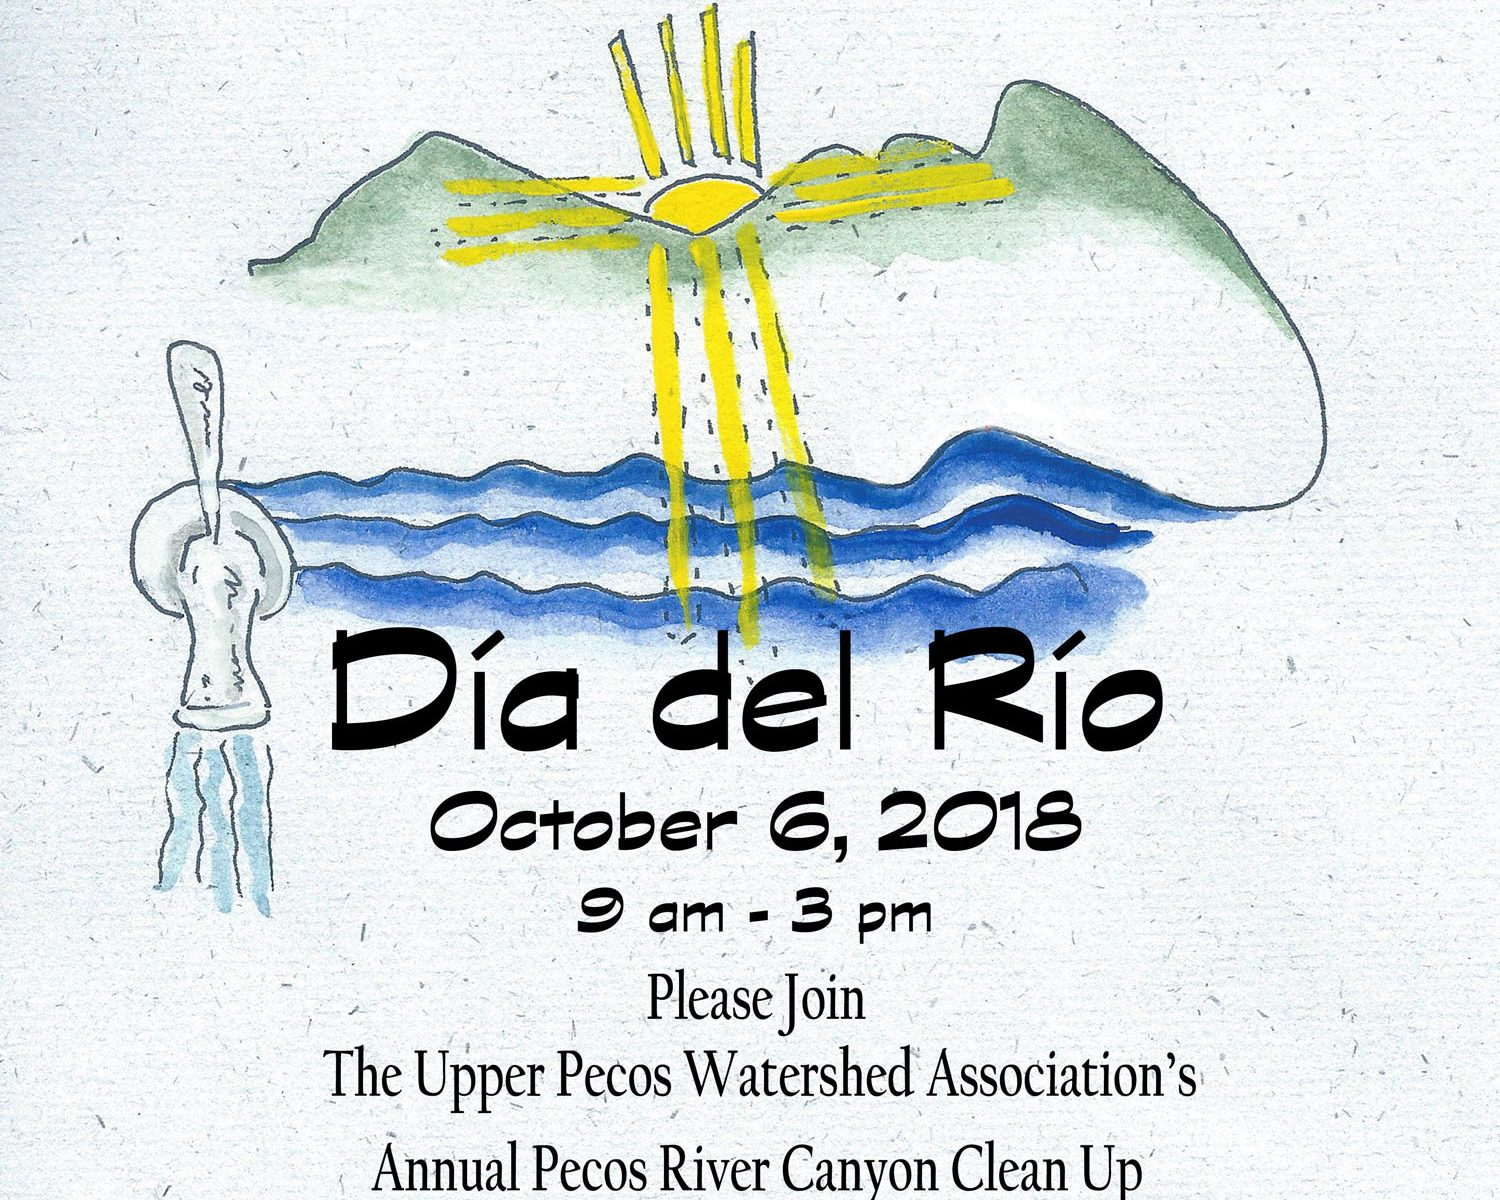 Upper Pecos Watershed Association - Dia del Rio Pecos River canyon clean up